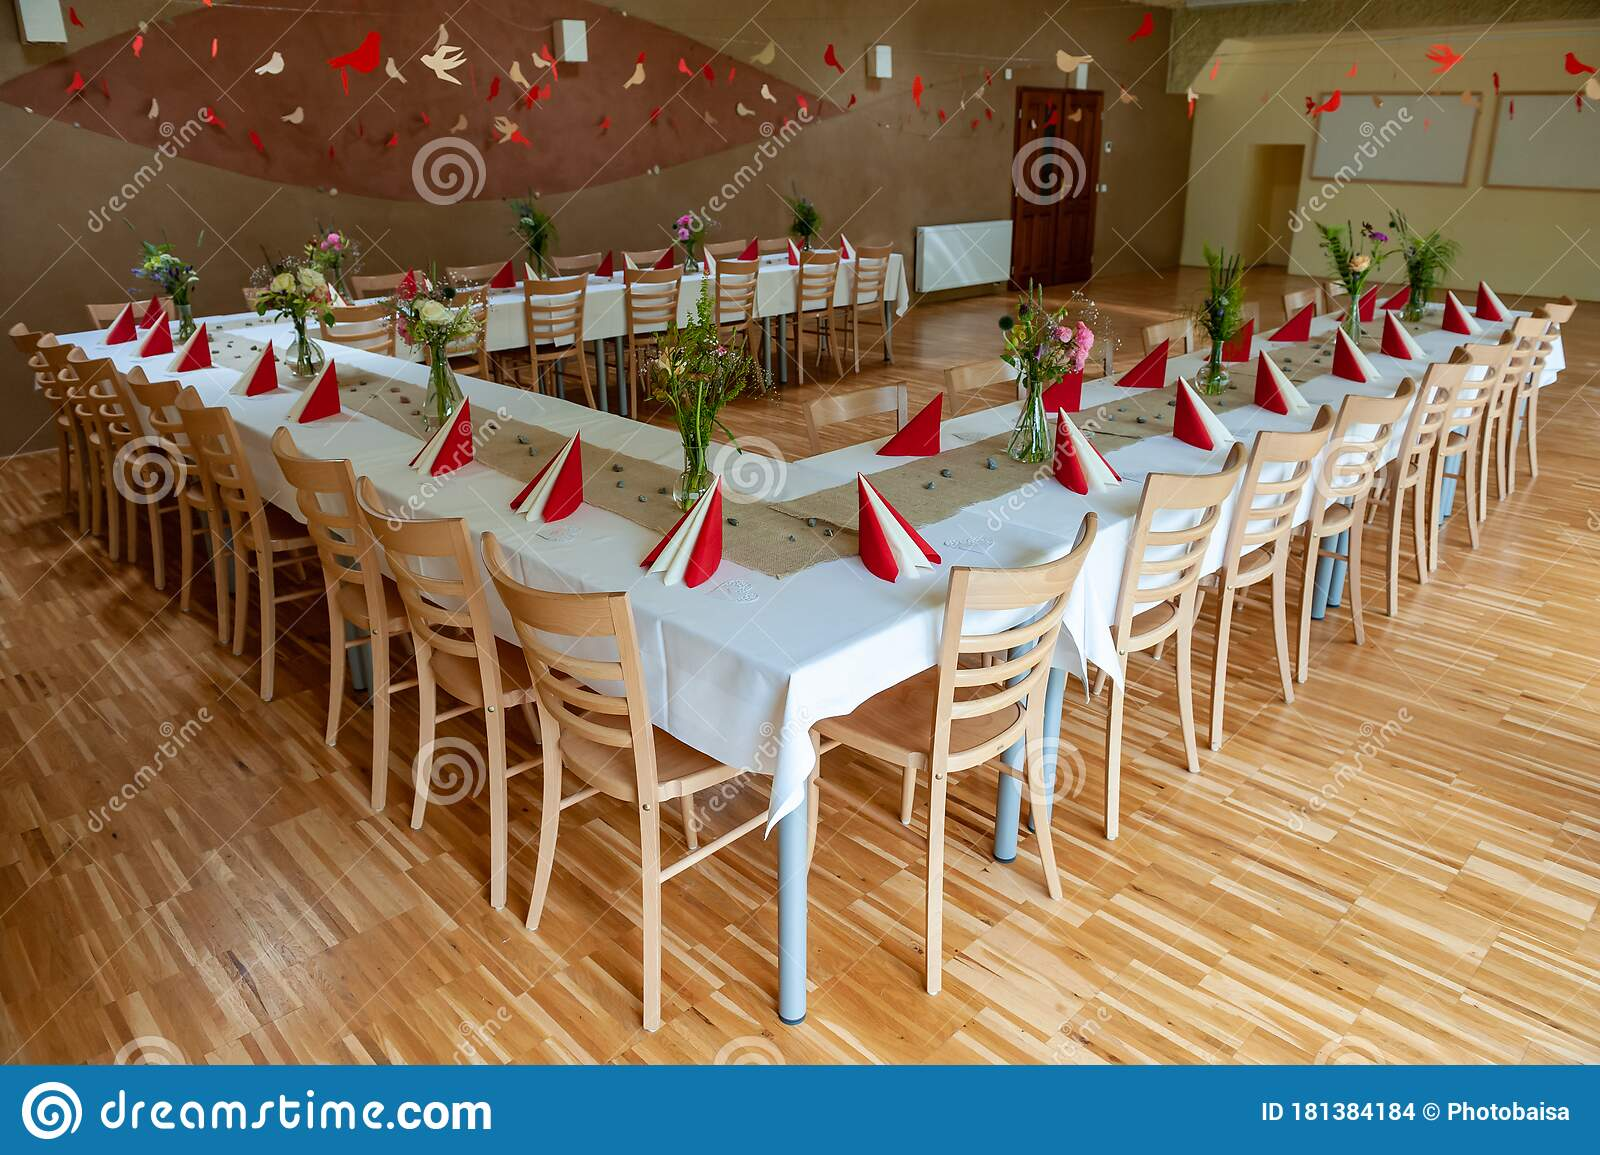 Red And White Indoor Catering Dinner At Summer Wedding With Homemade Meadow Flower Decoration White Wedding Table Decoration With Stock Photo Image Of Arrangement Chair 181384184